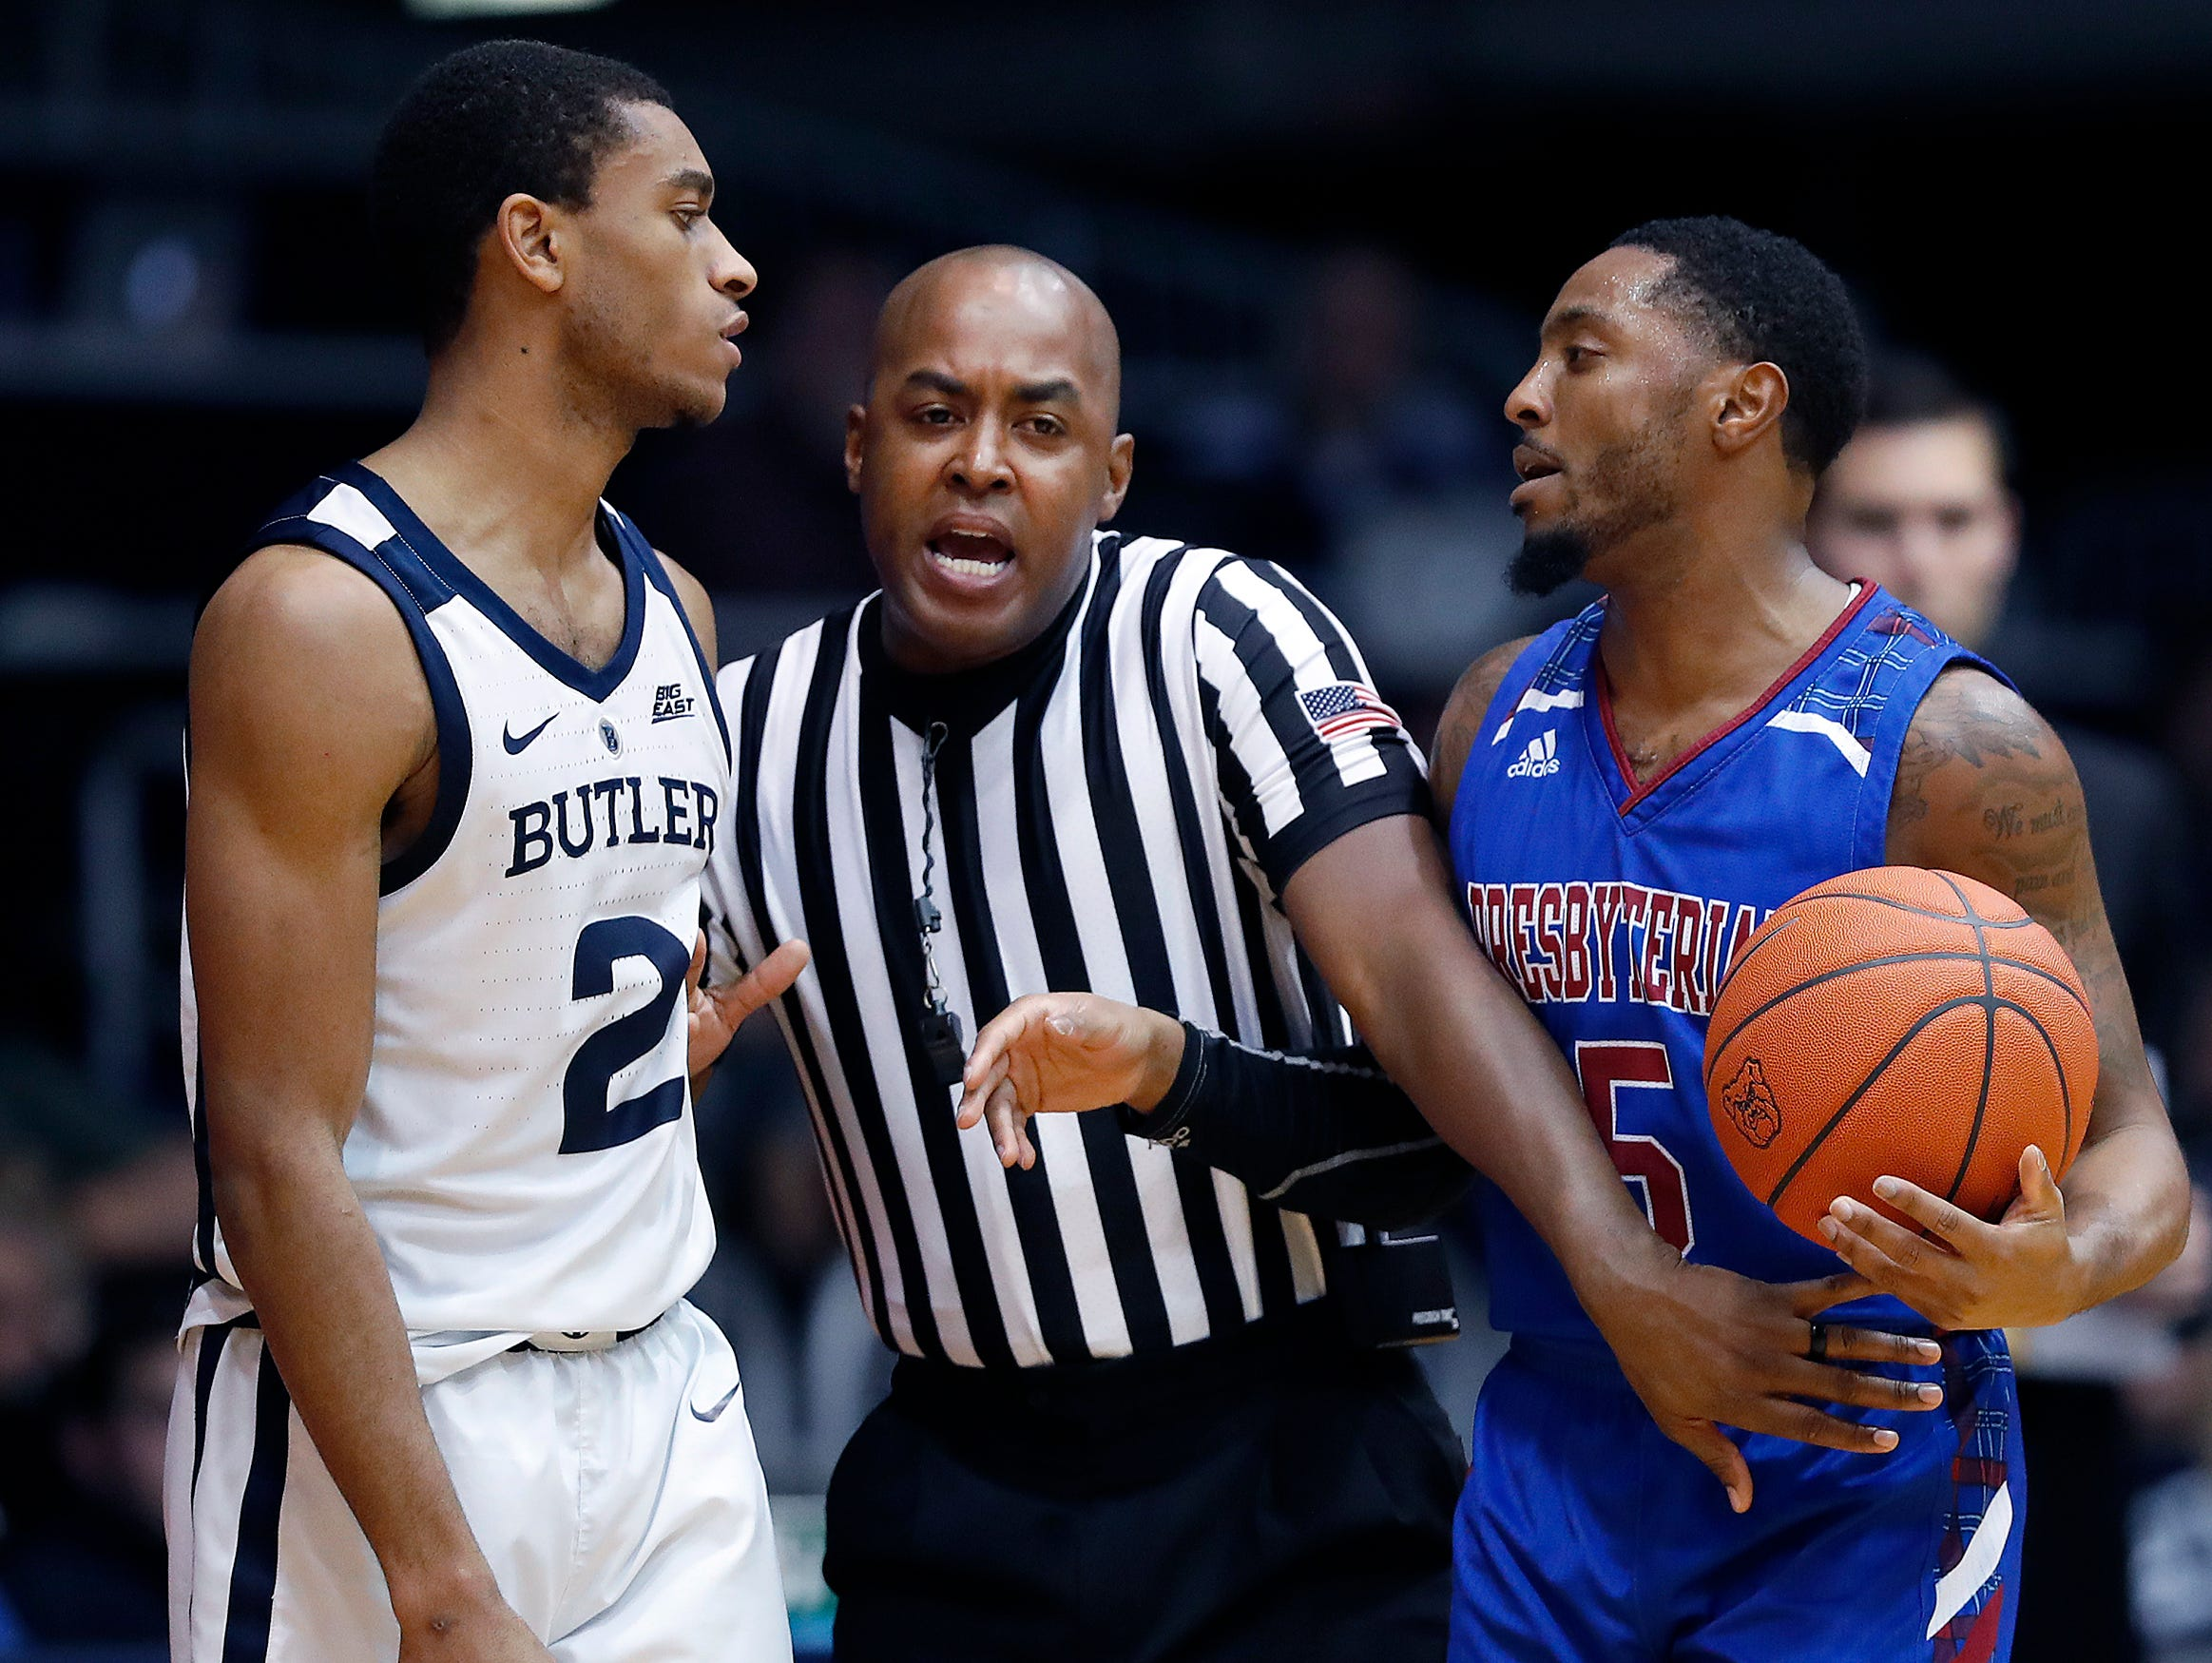 Butler Bulldogs guard Aaron Thompson (2) and Presbyterian Blue Hose guard Davon Bell (5) are separated by official Evon Burroughs in the second half of their game at Hinkle Fieldhouse on Monday, Dec. 18, 2018.